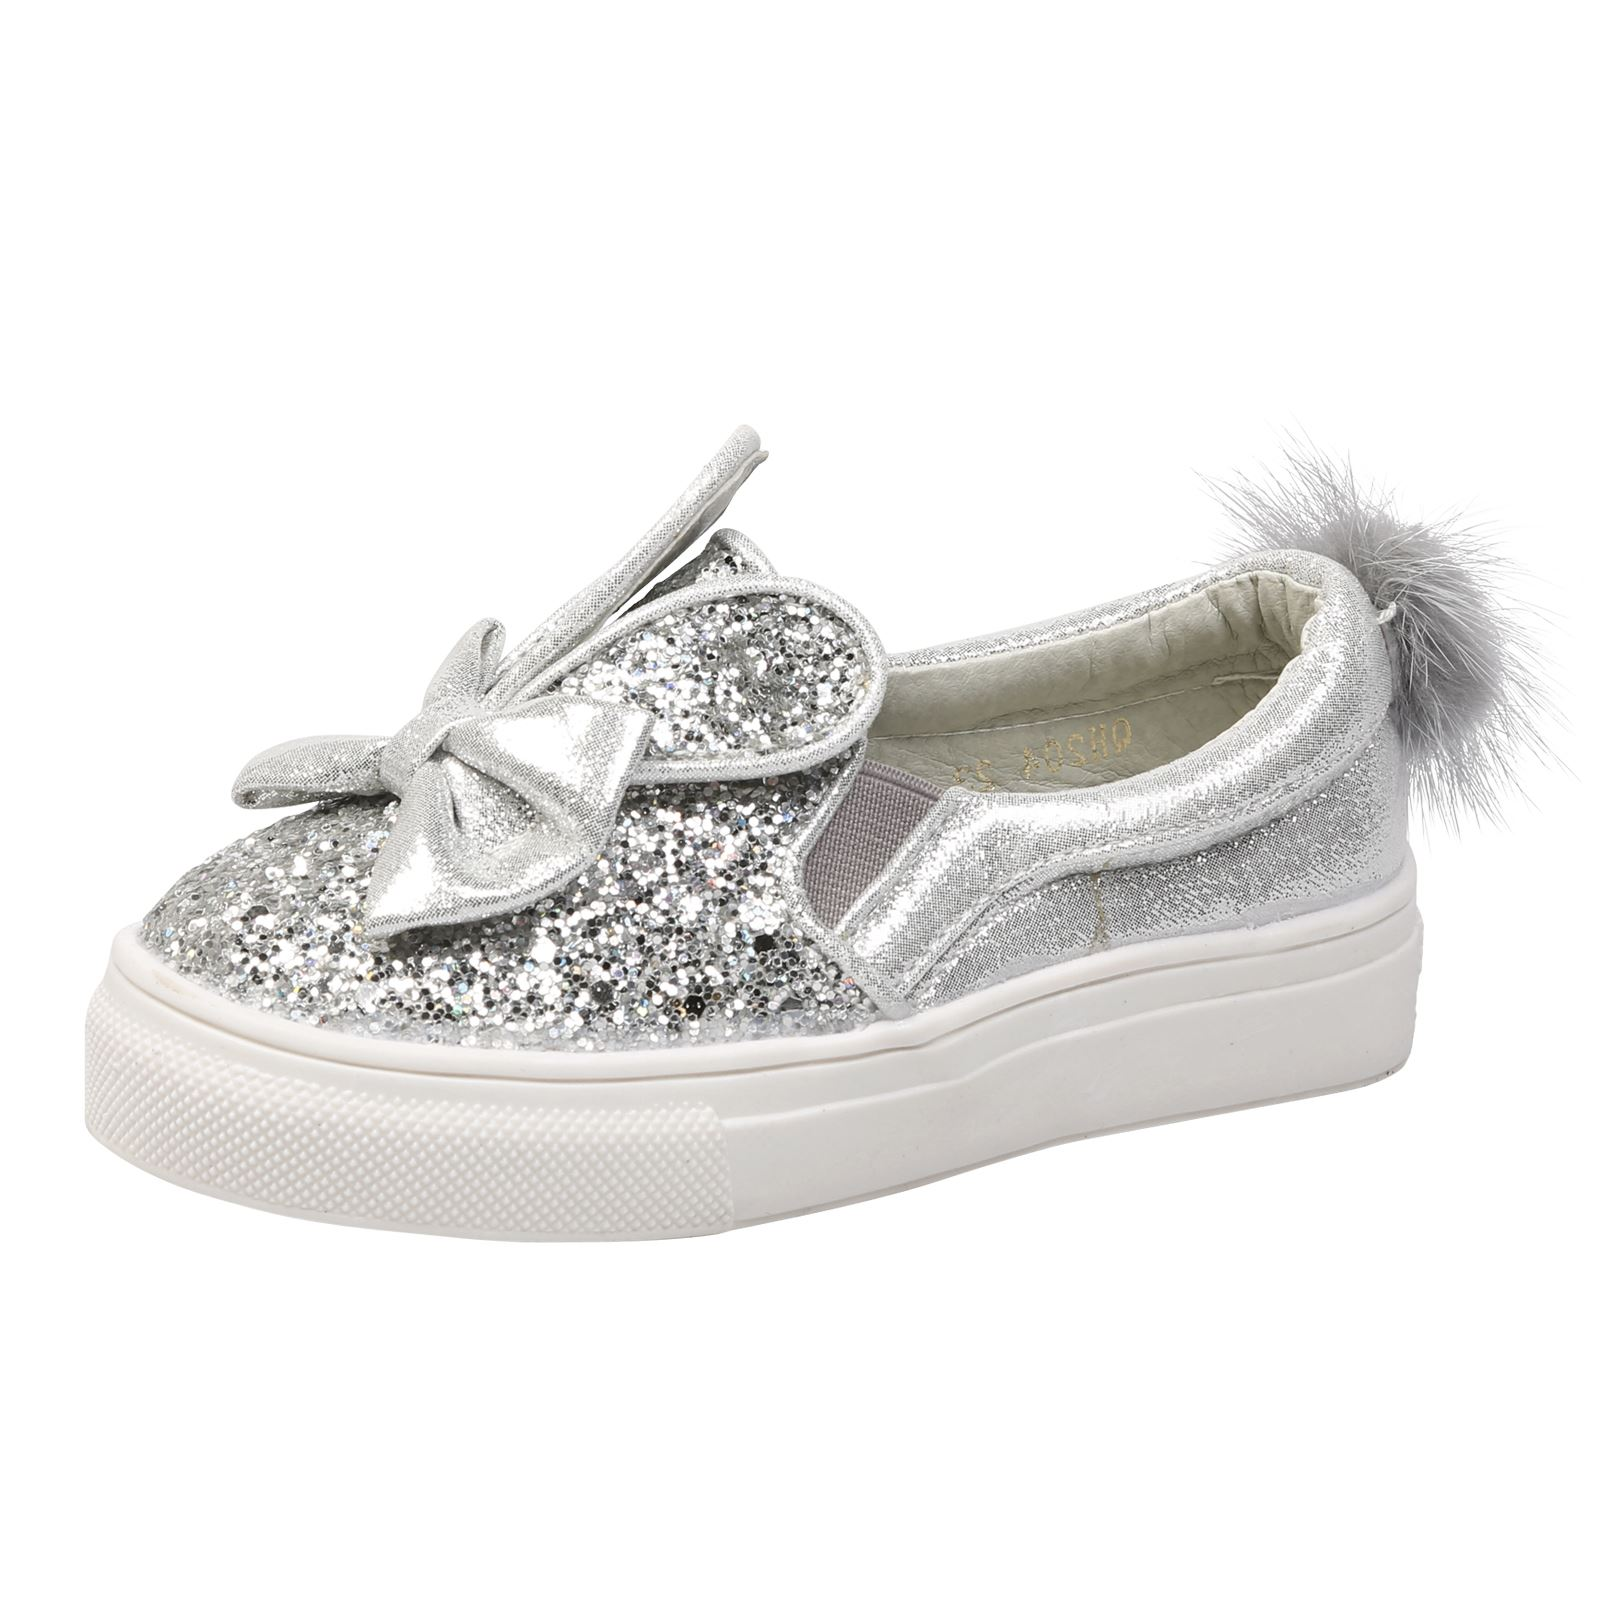 Kids Girls Glitter Pom Bunny PUMPS Childrens Plimsolls SNEAKERS